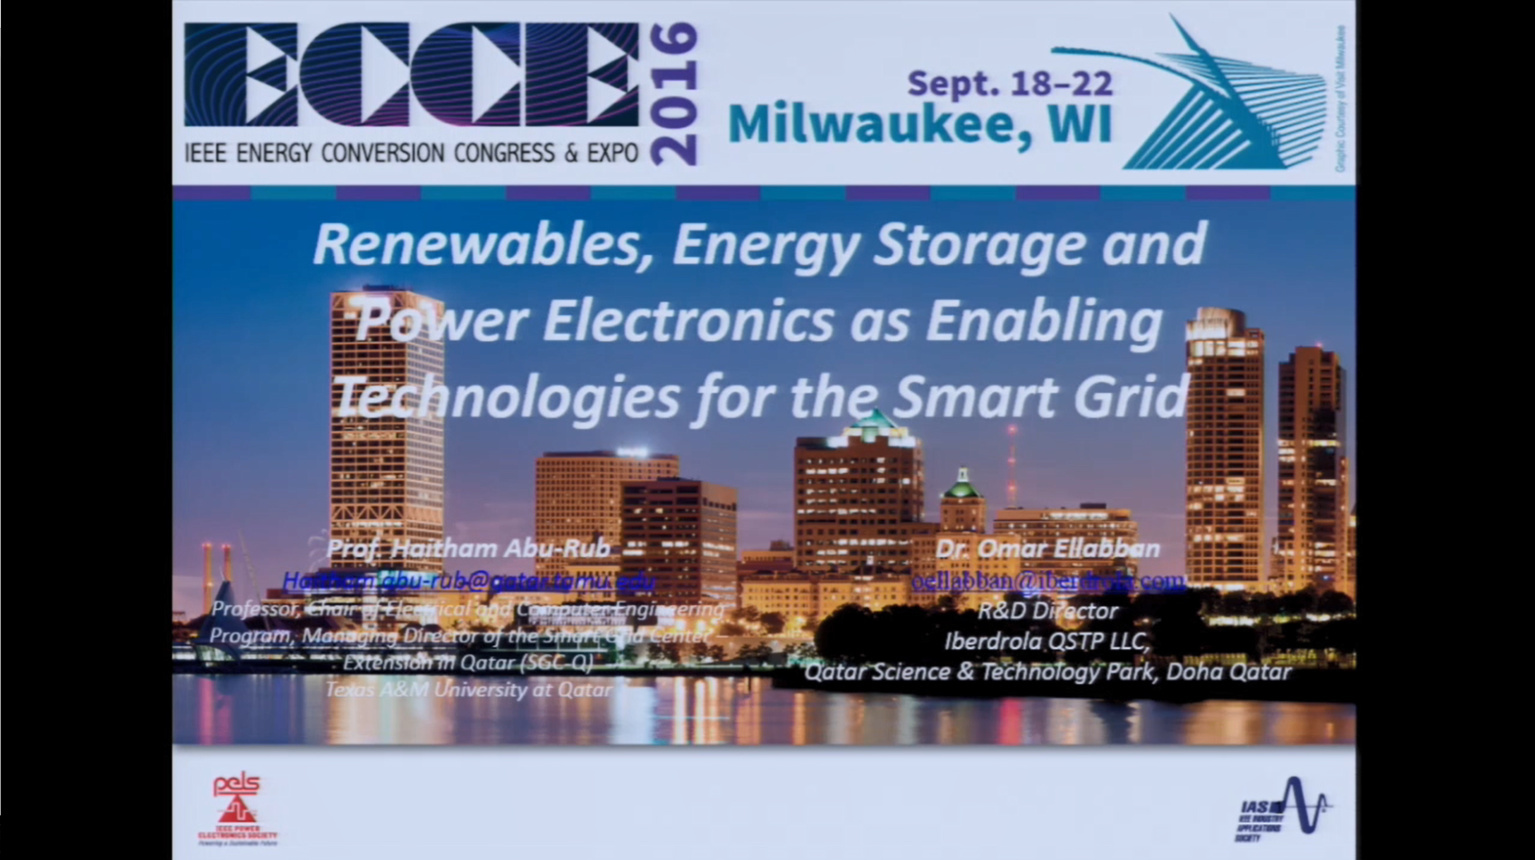 Renewables, Energy Storage and Power Electronics as Enabling Technologies for the Smart Grid Part I